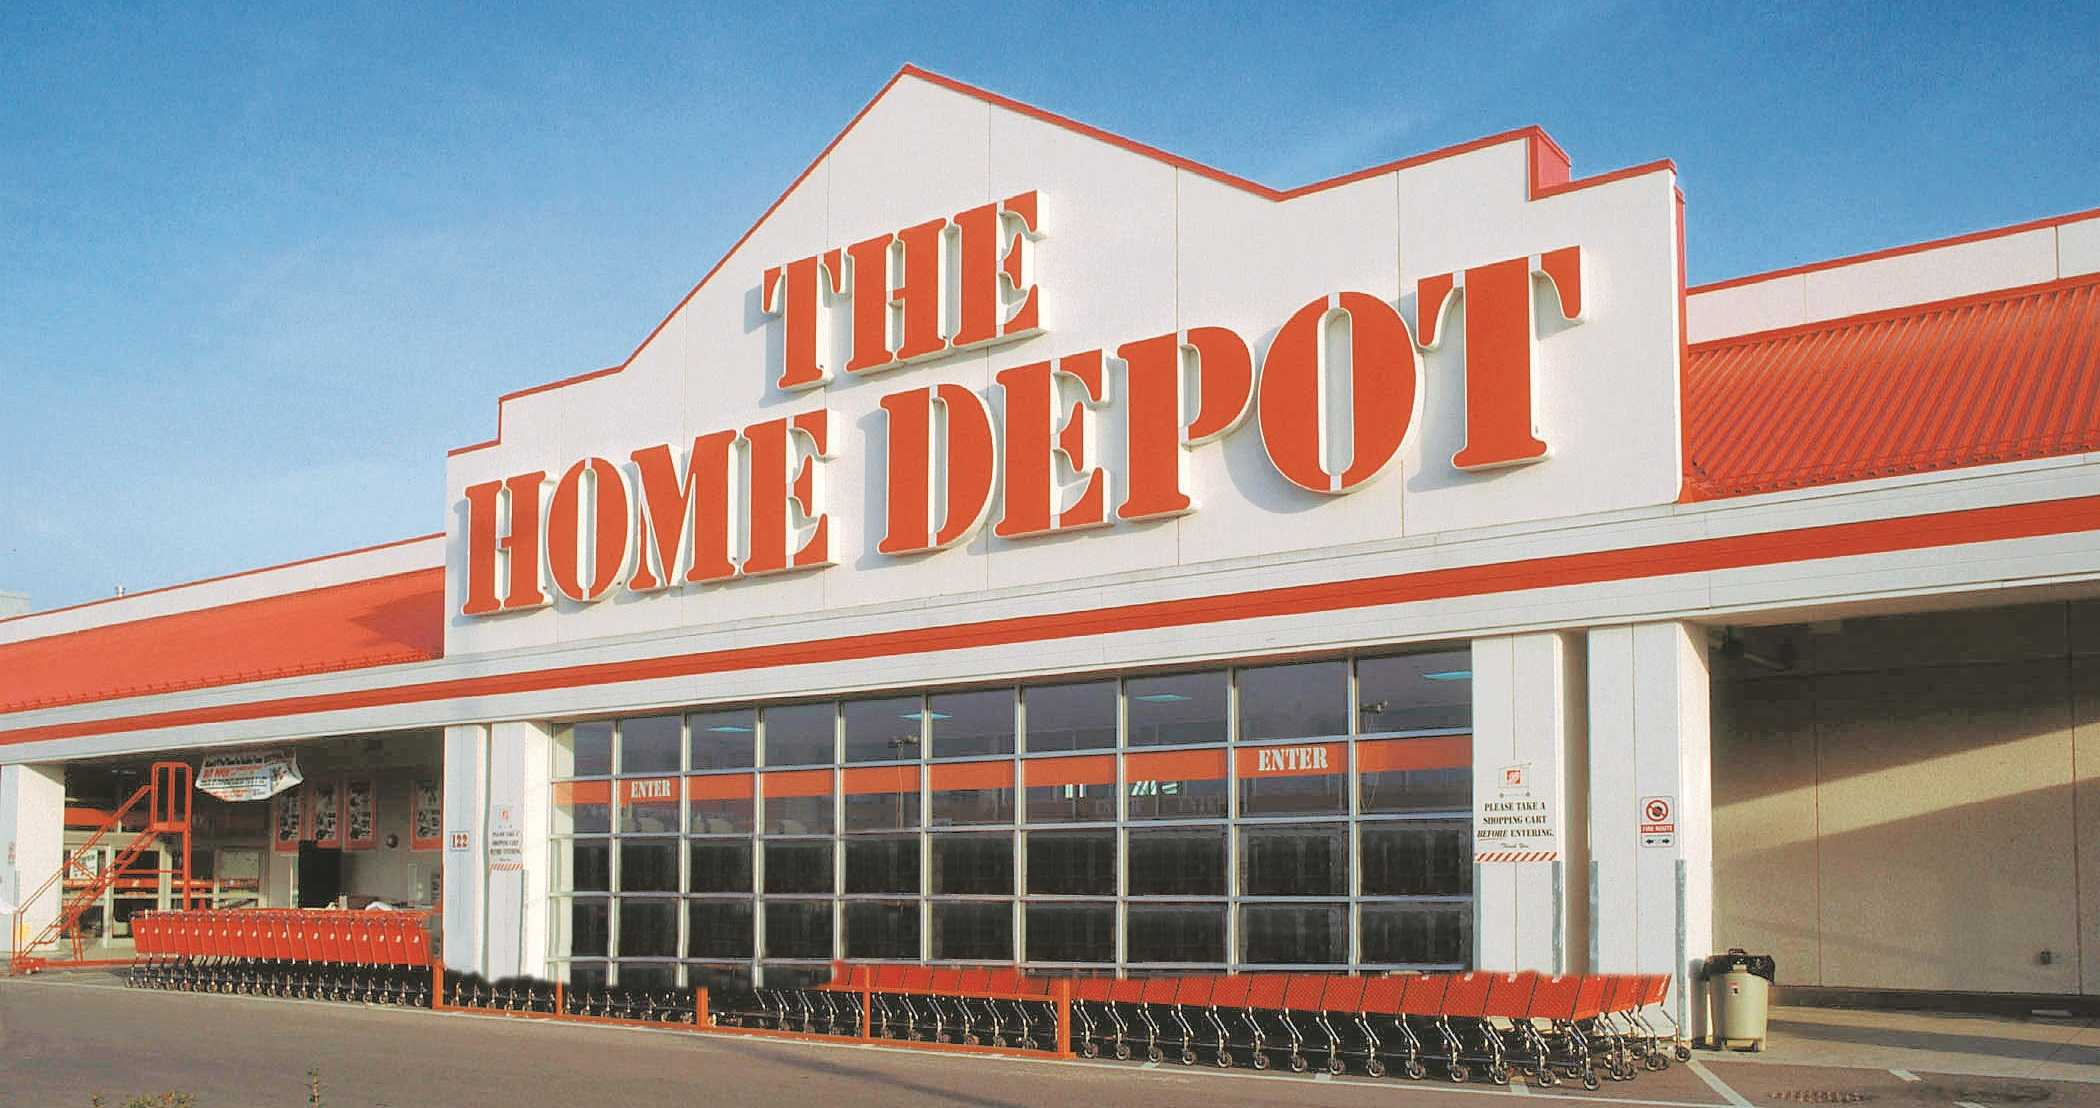 Take Me Nearest Home Depot